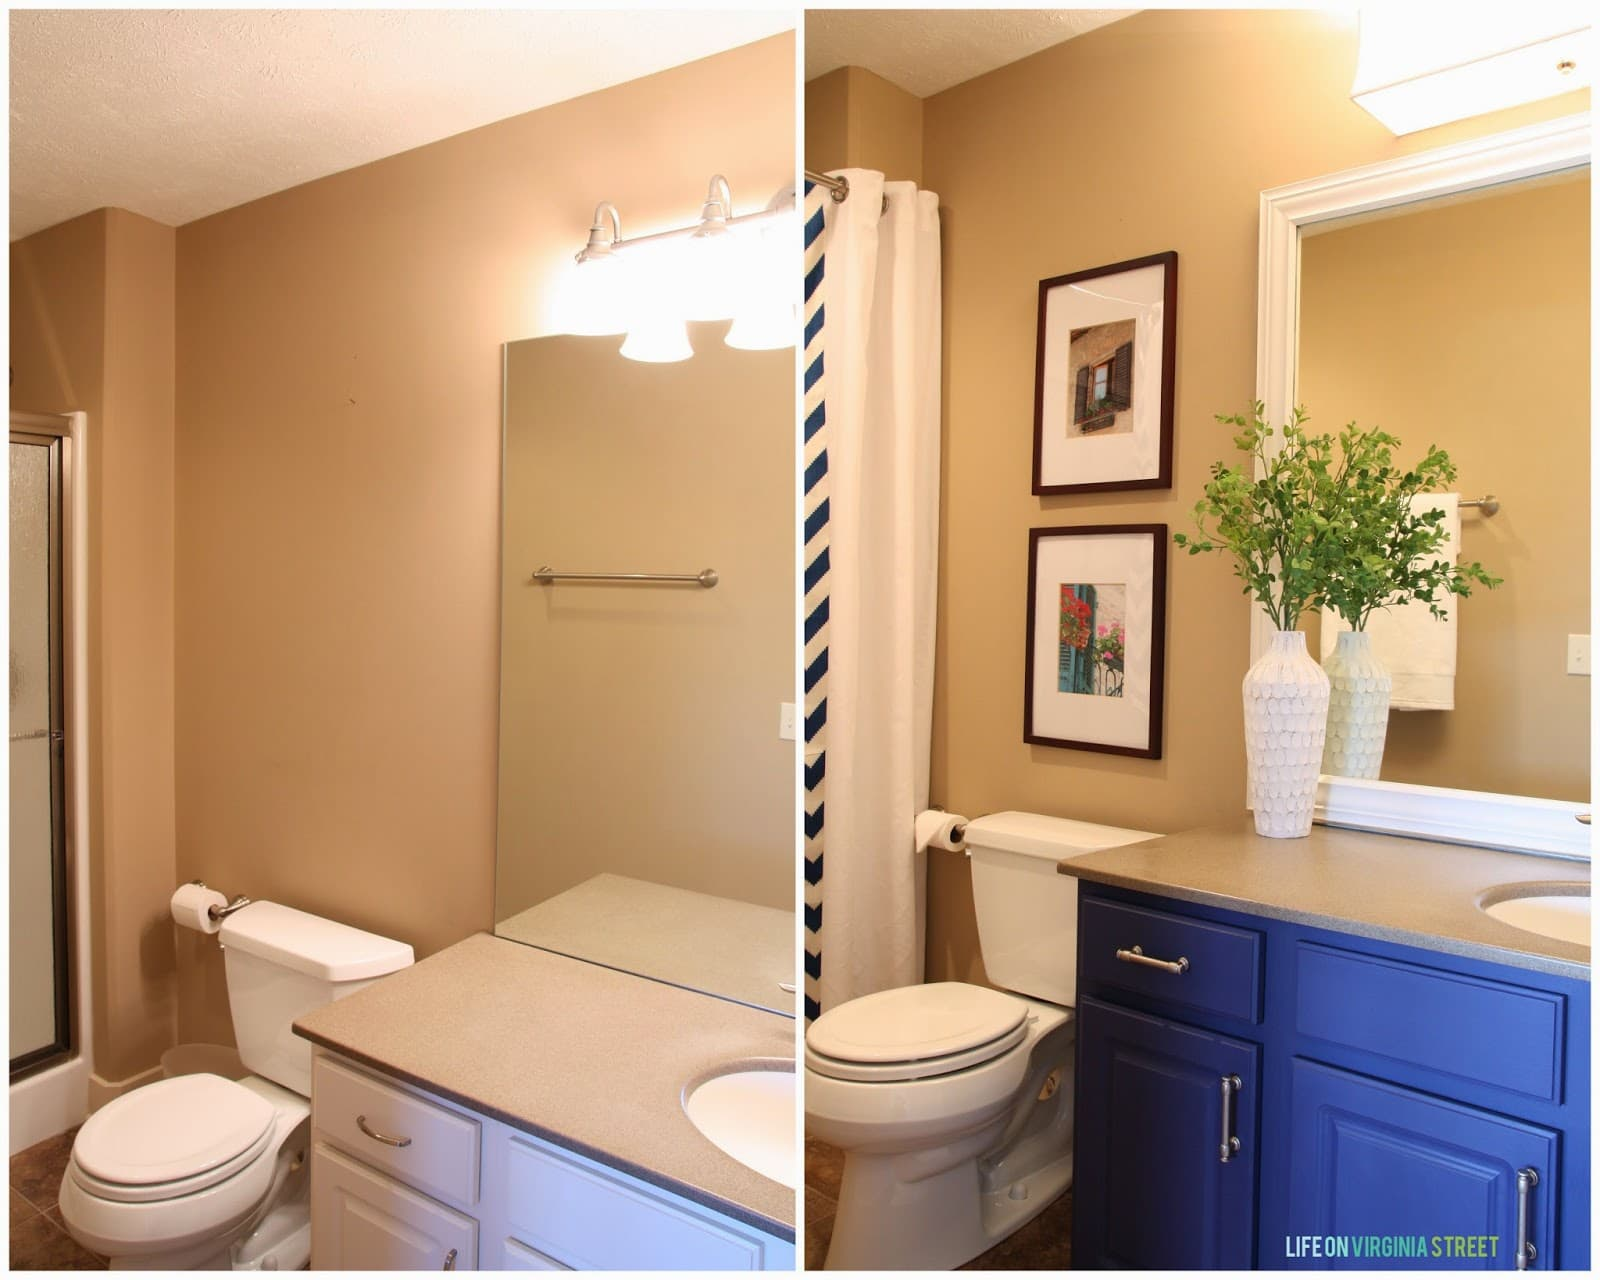 Framing A Bathroom Mirror Before And After guest bathroom: lighting and framing a builder-grade mirror